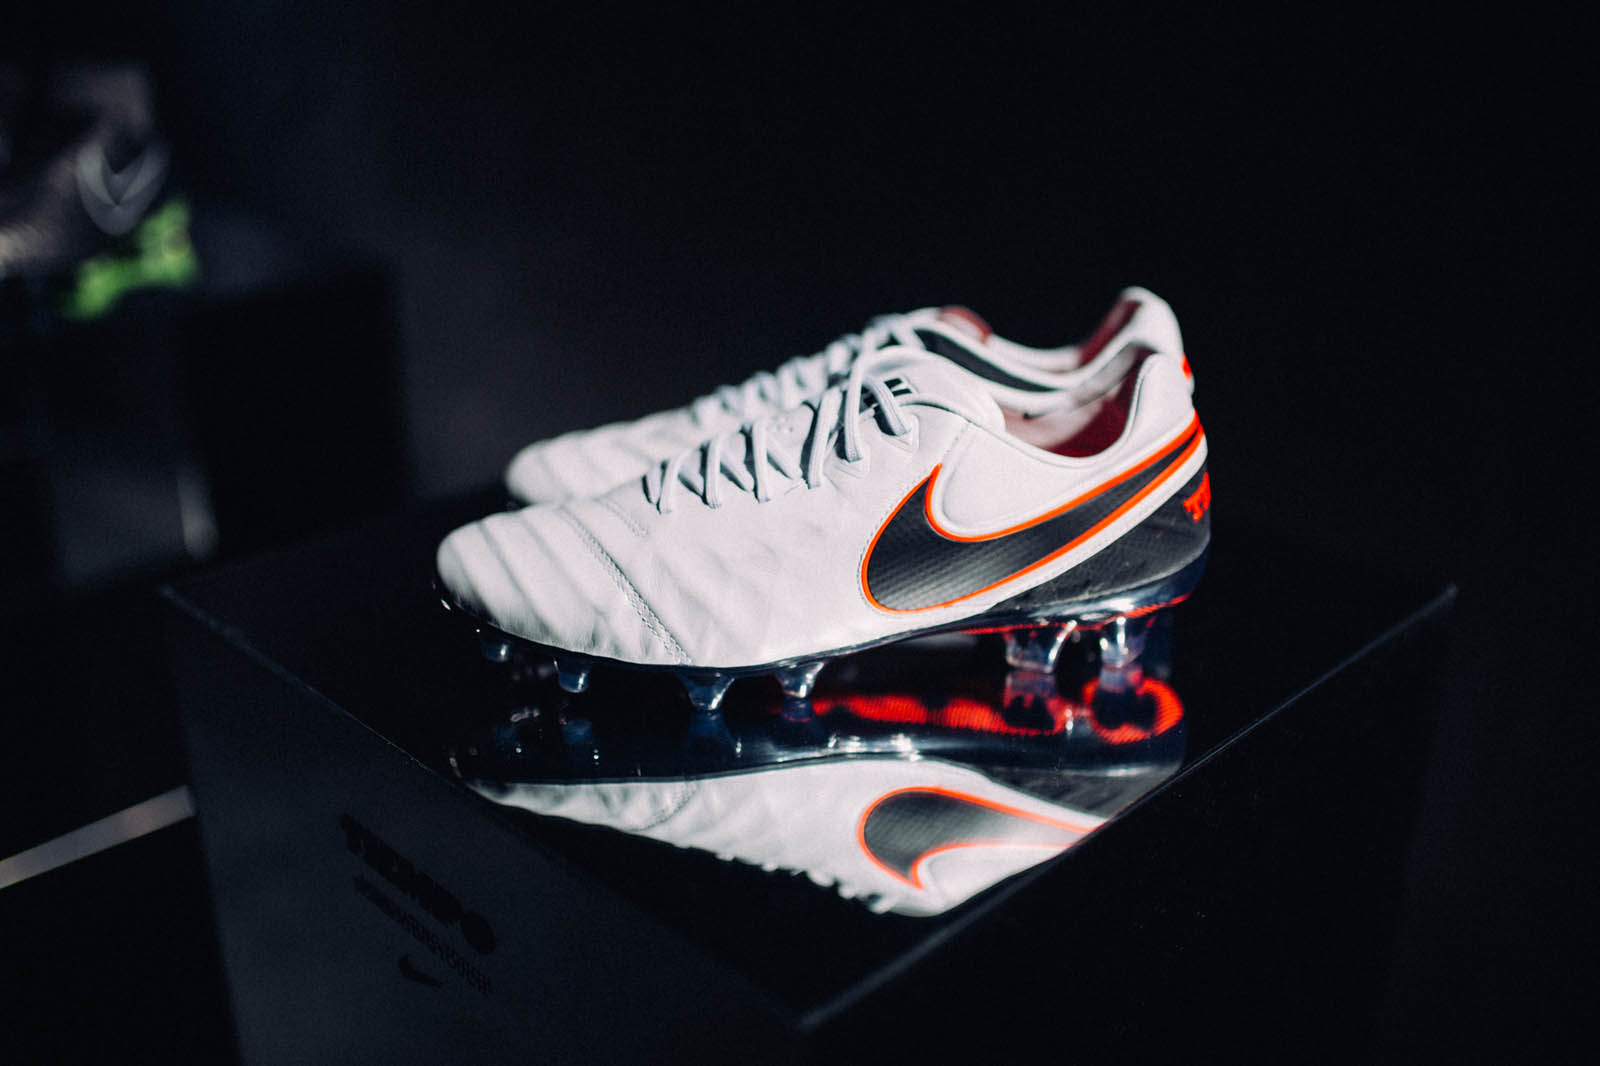 Nike Liquid Chrome 2015-2016 Football Boots Pack Released - Footy Headlines 83bbe8ca75731